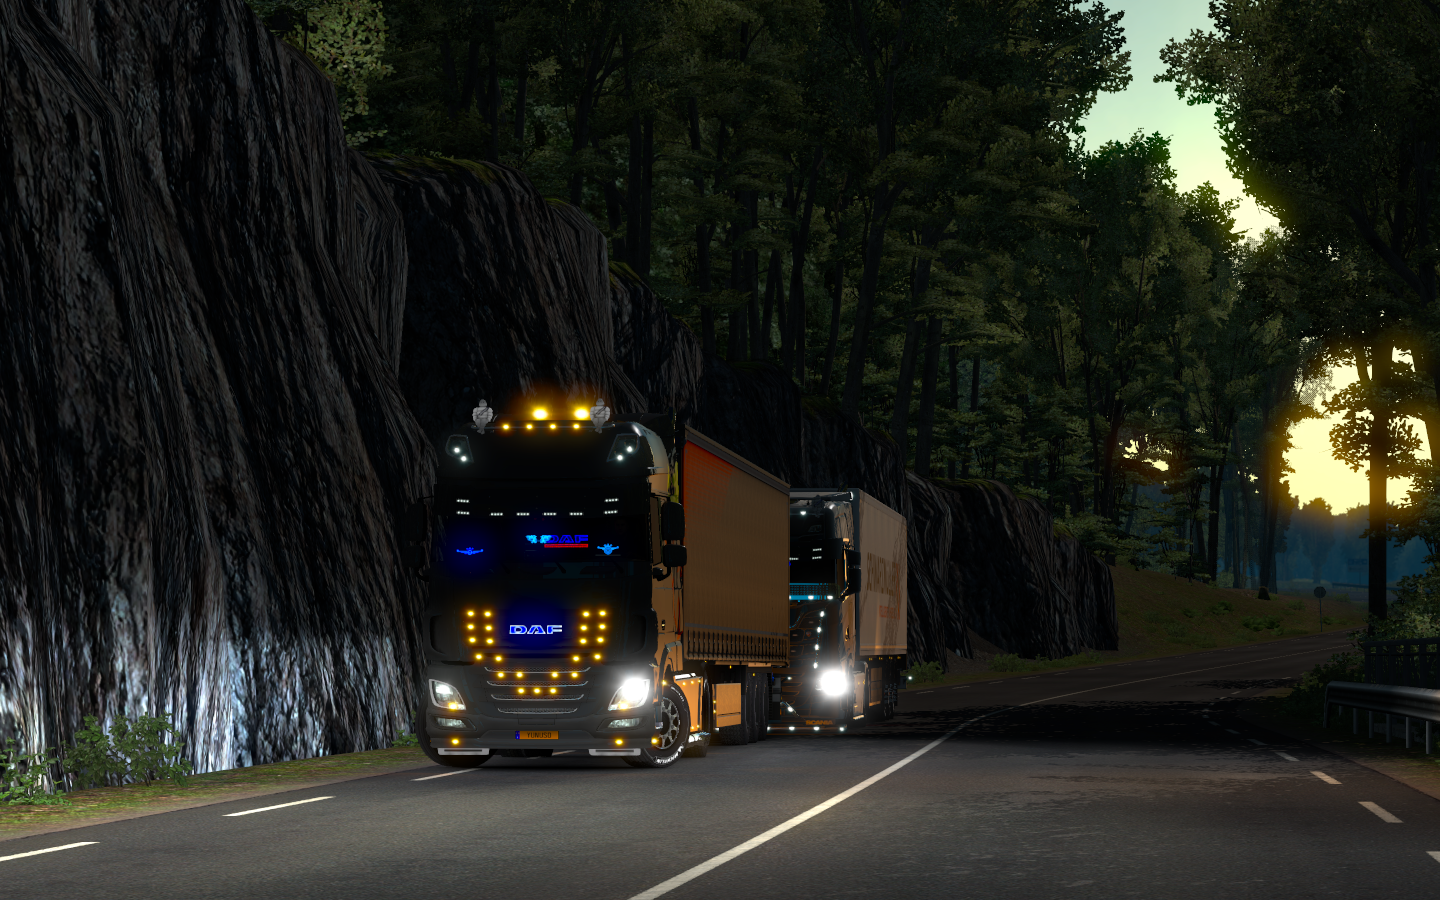 ets2_20190316_031539_00.png